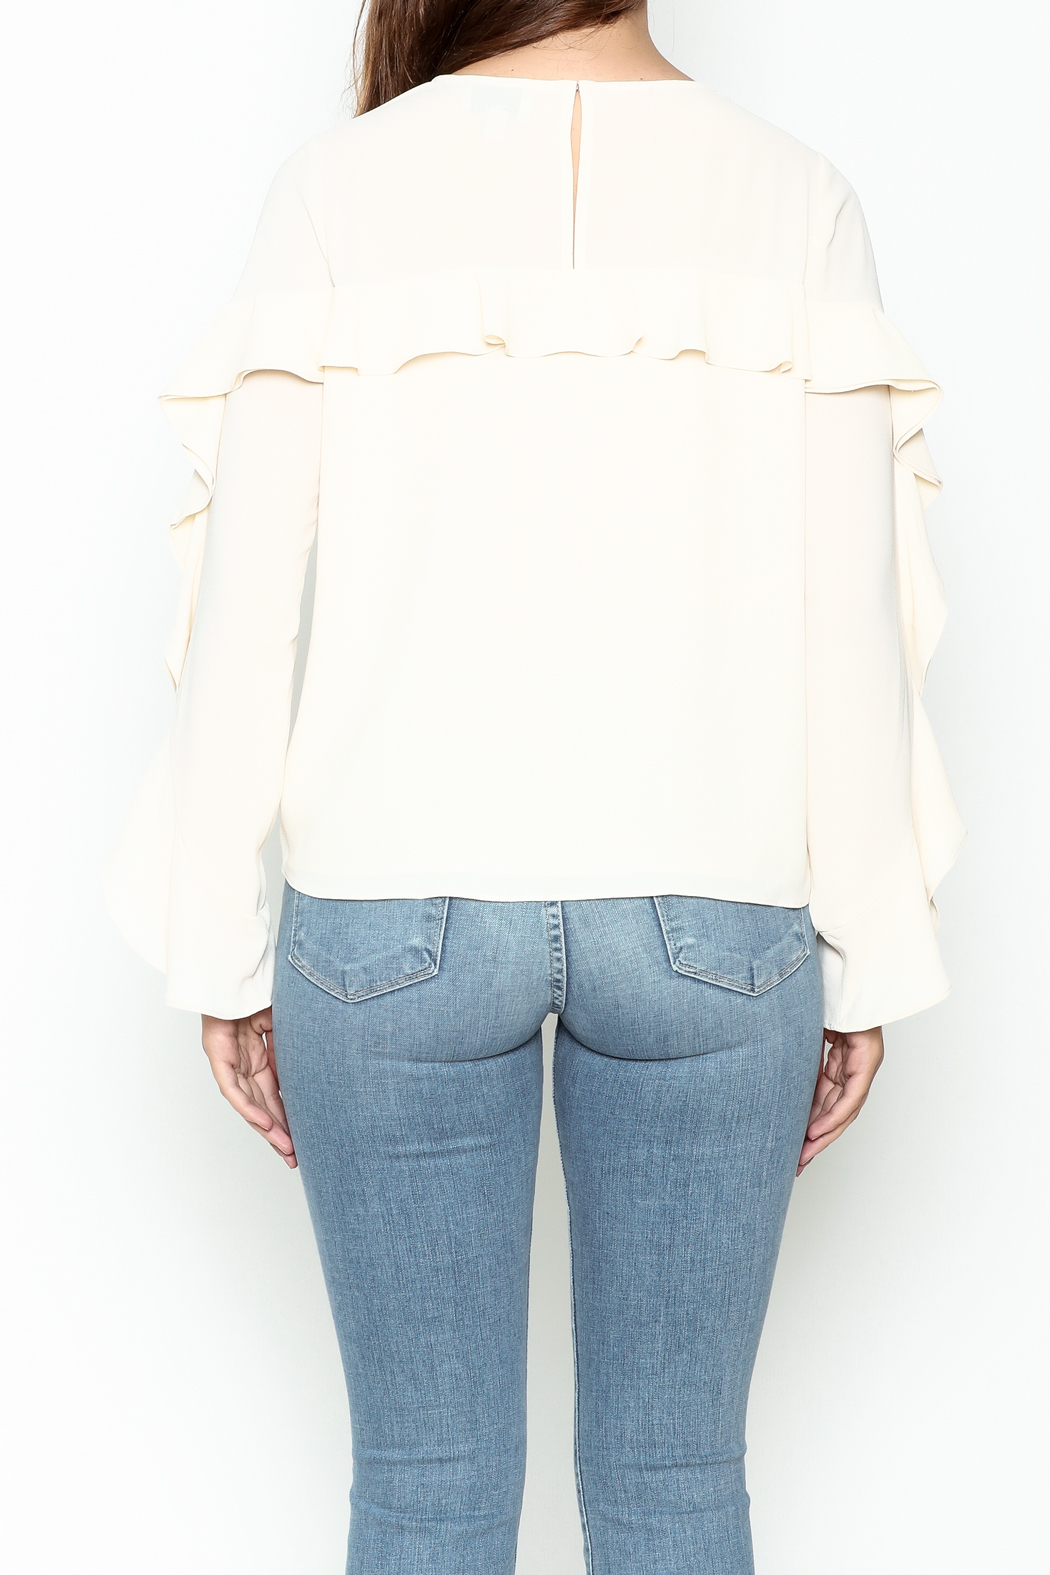 Greylin Thalia Ruffled Blouse - Back Cropped Image